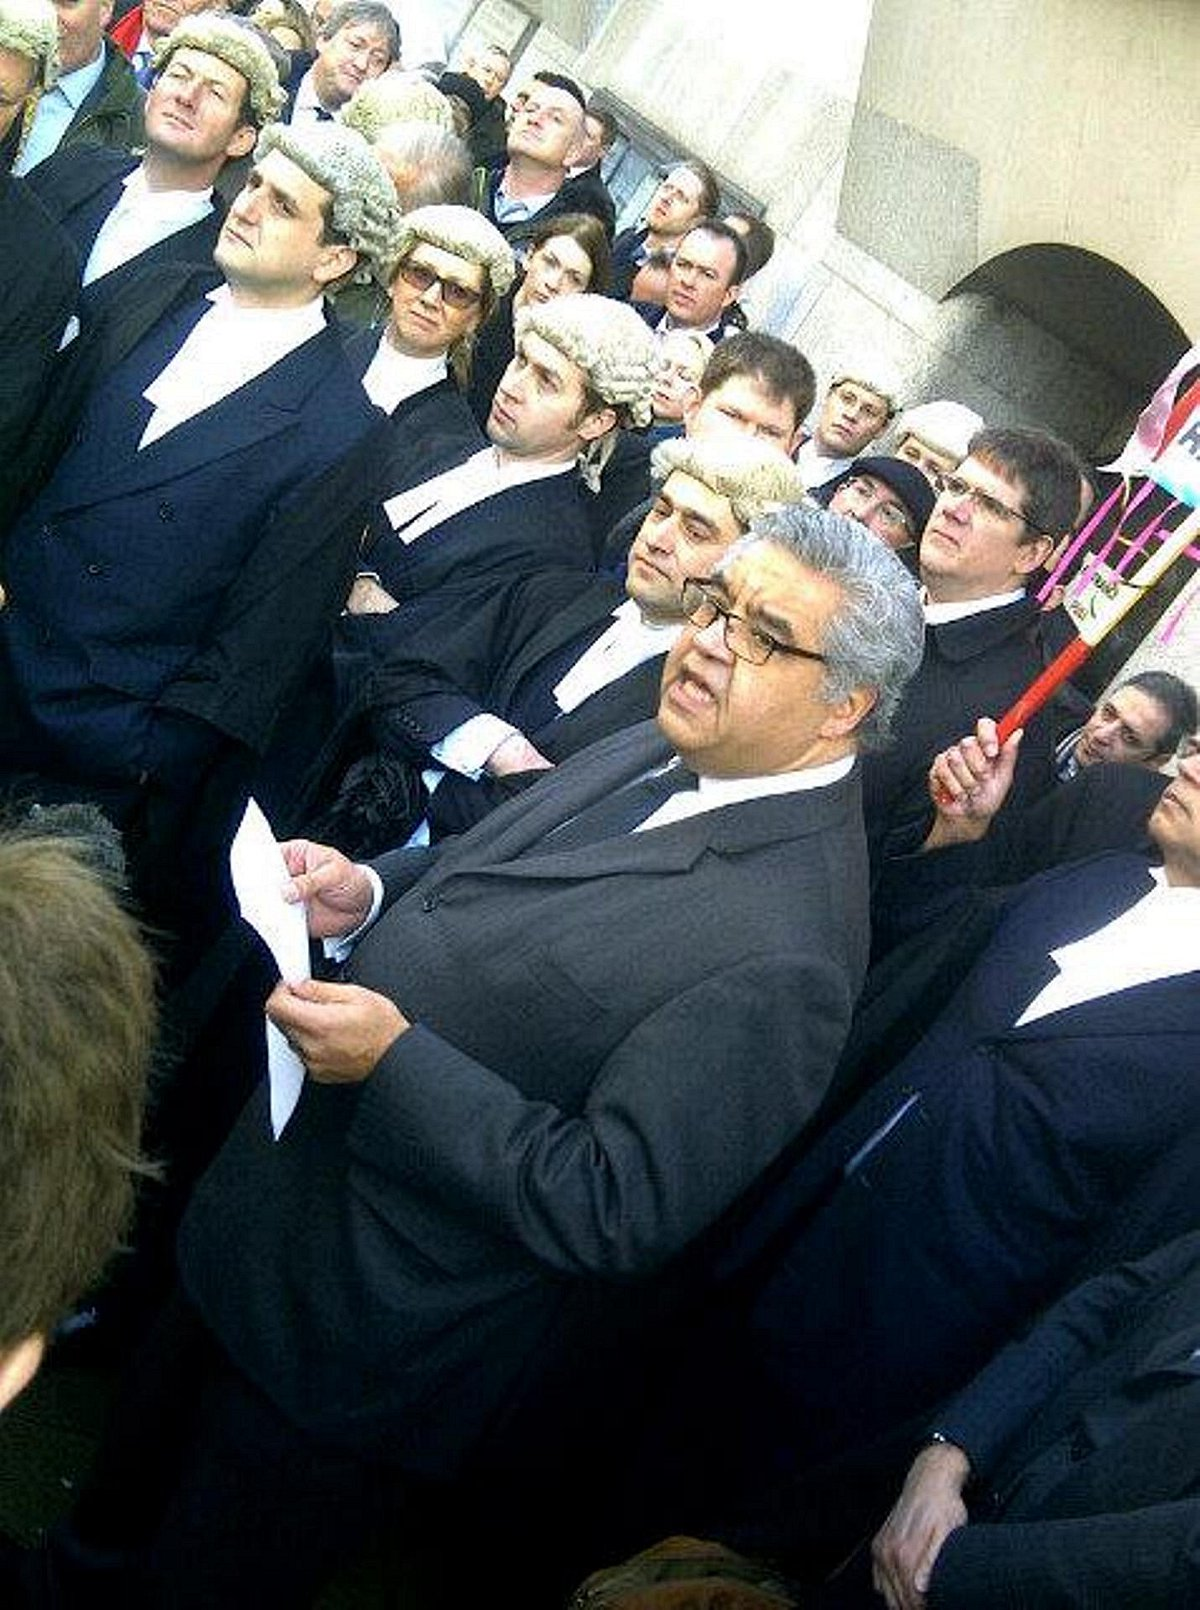 Criminal barristers stage half-day walk-out in protest at legal aid cuts